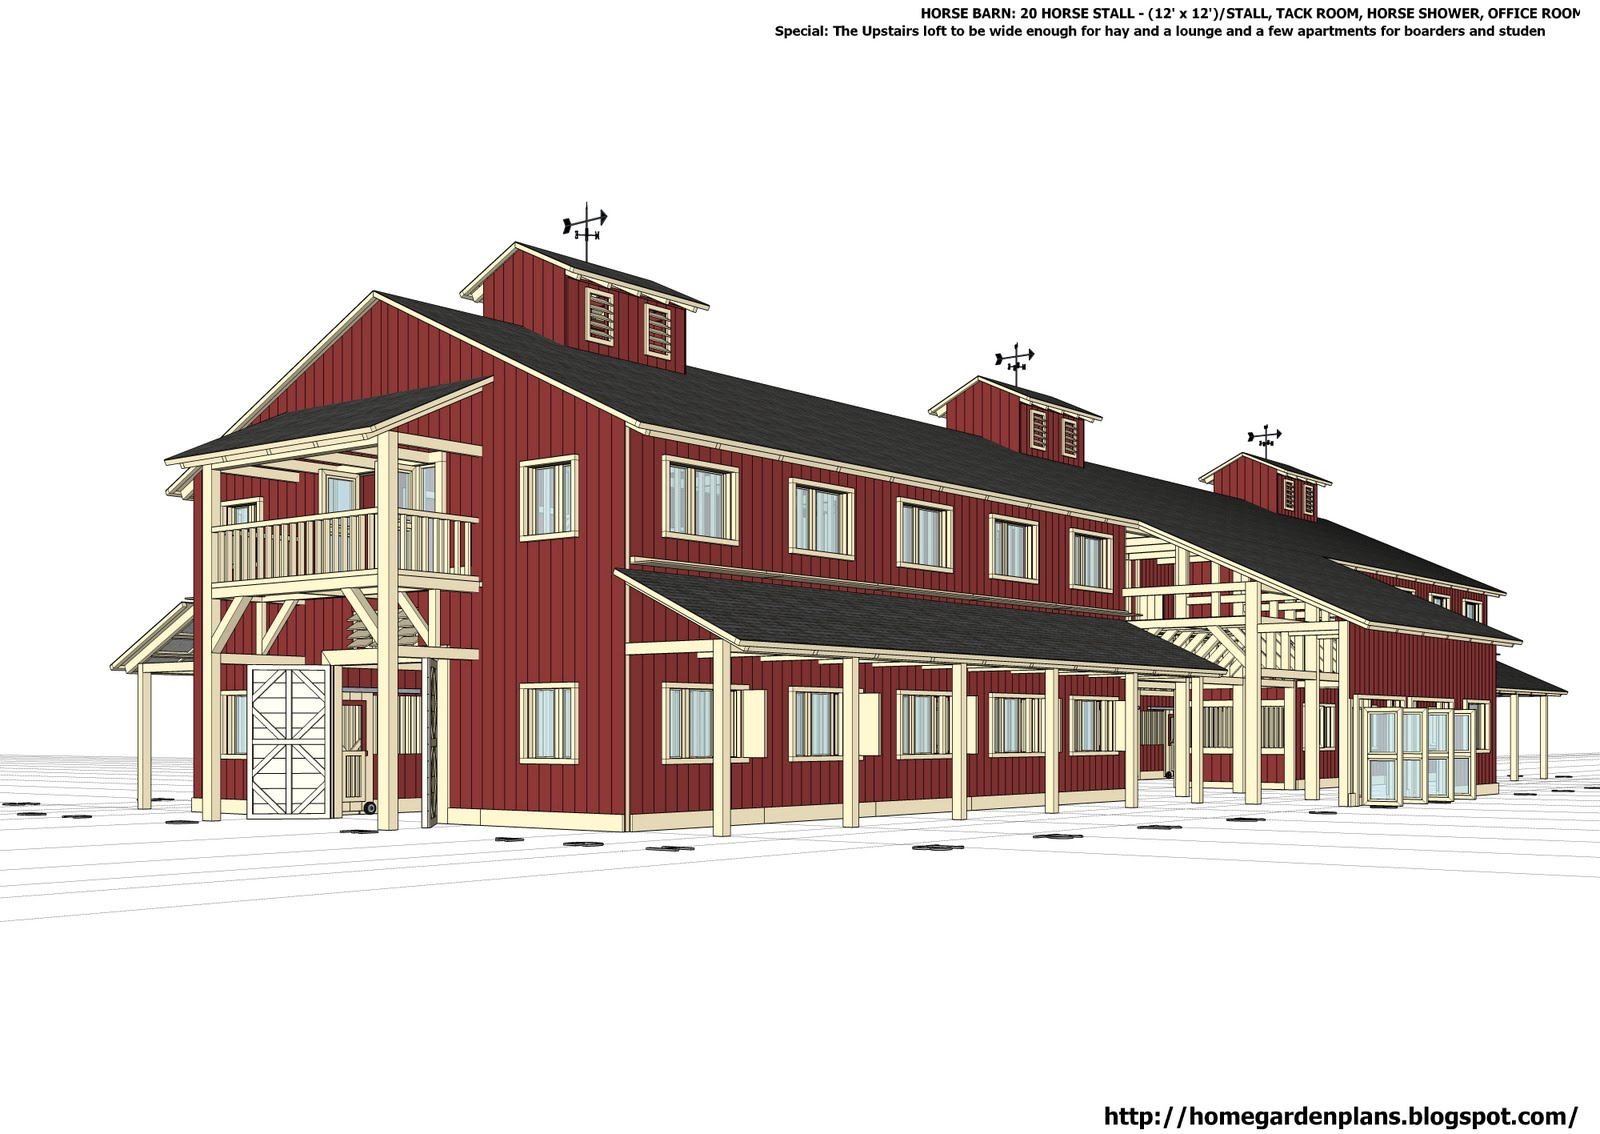 Home garden plans h20b1 20 stall horse barn plans for Equestrian barn plans